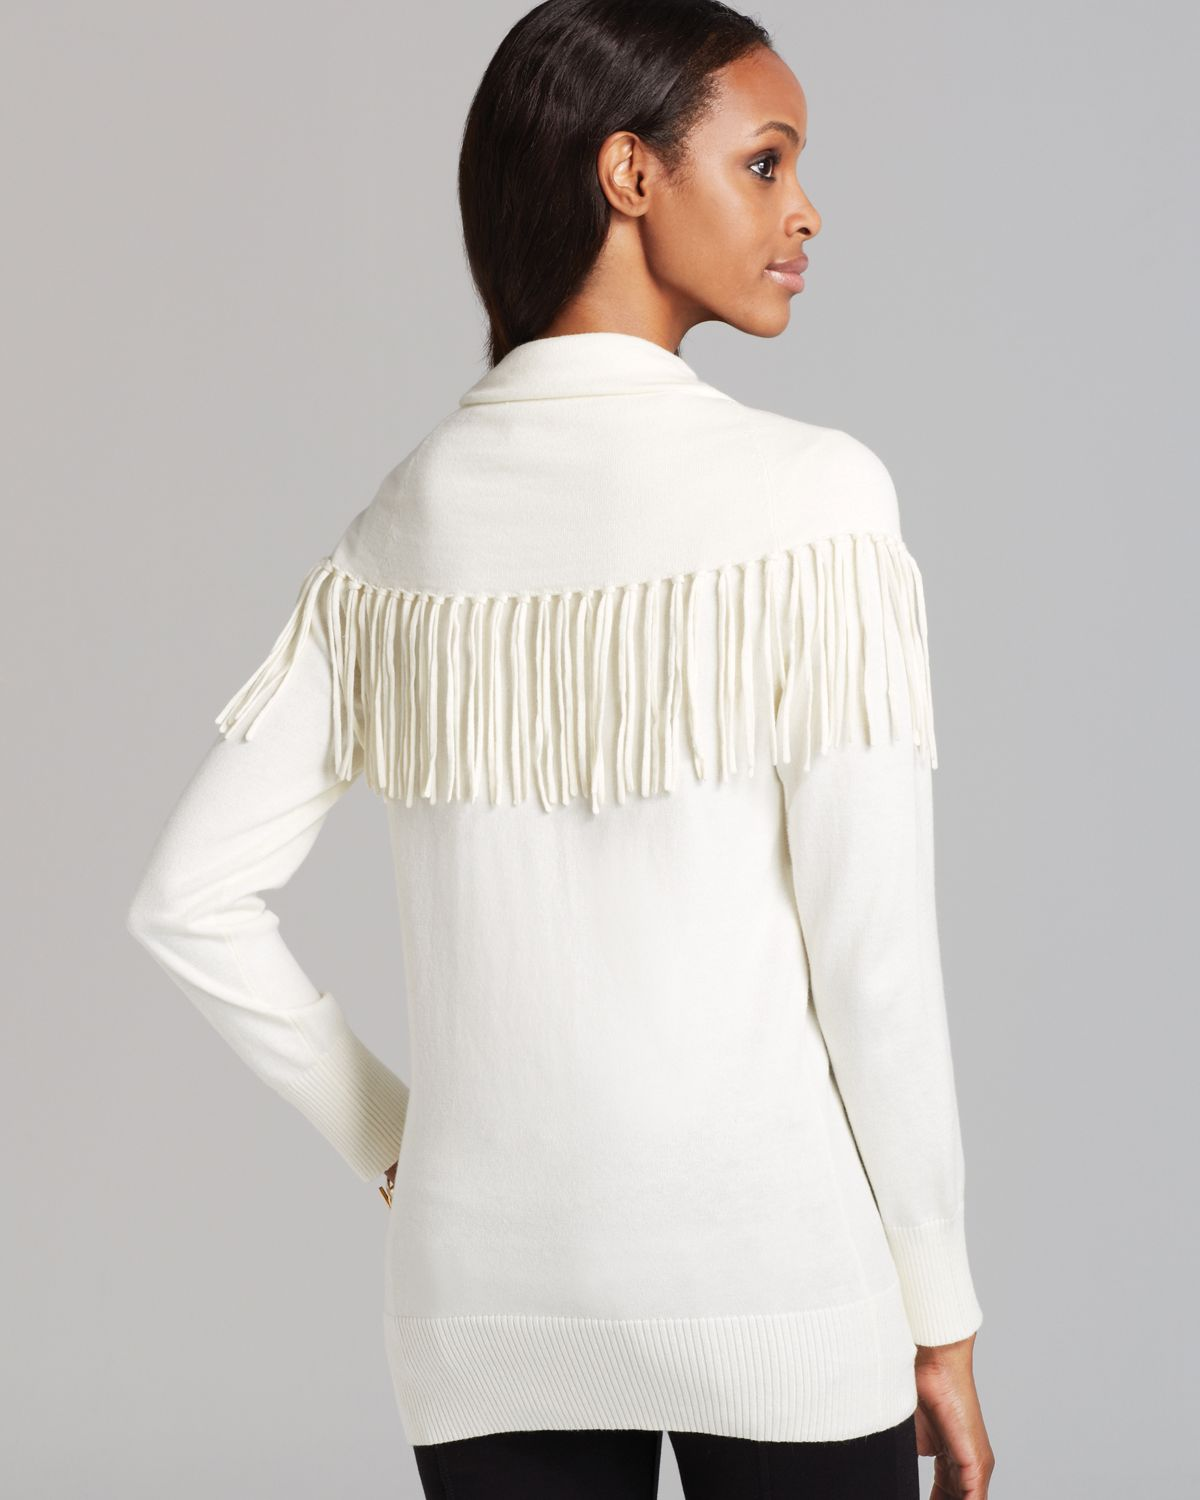 Michael michael kors Fringe Cowl Neck Sweater in Natural | Lyst